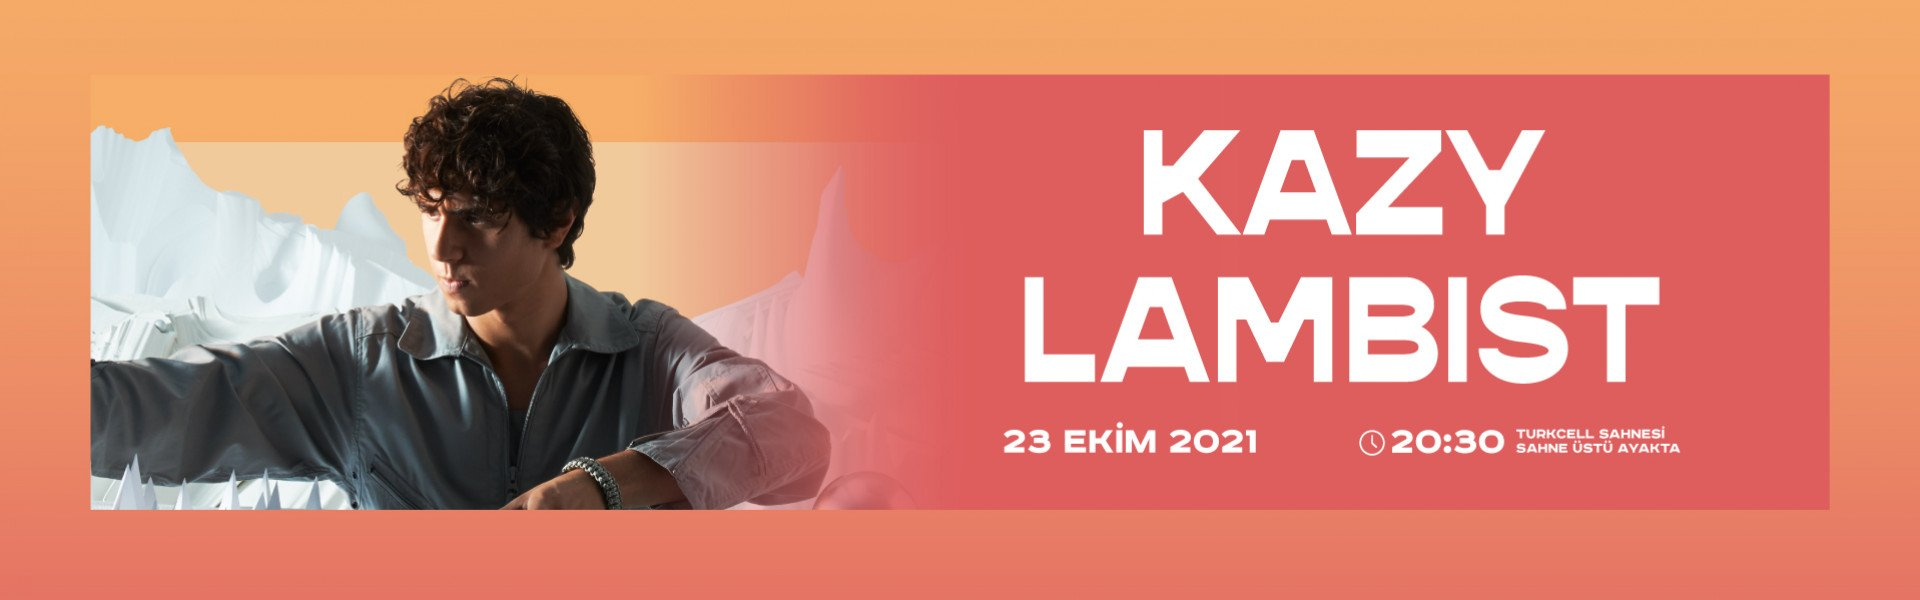 Kazy Lambist presented by %100 Music